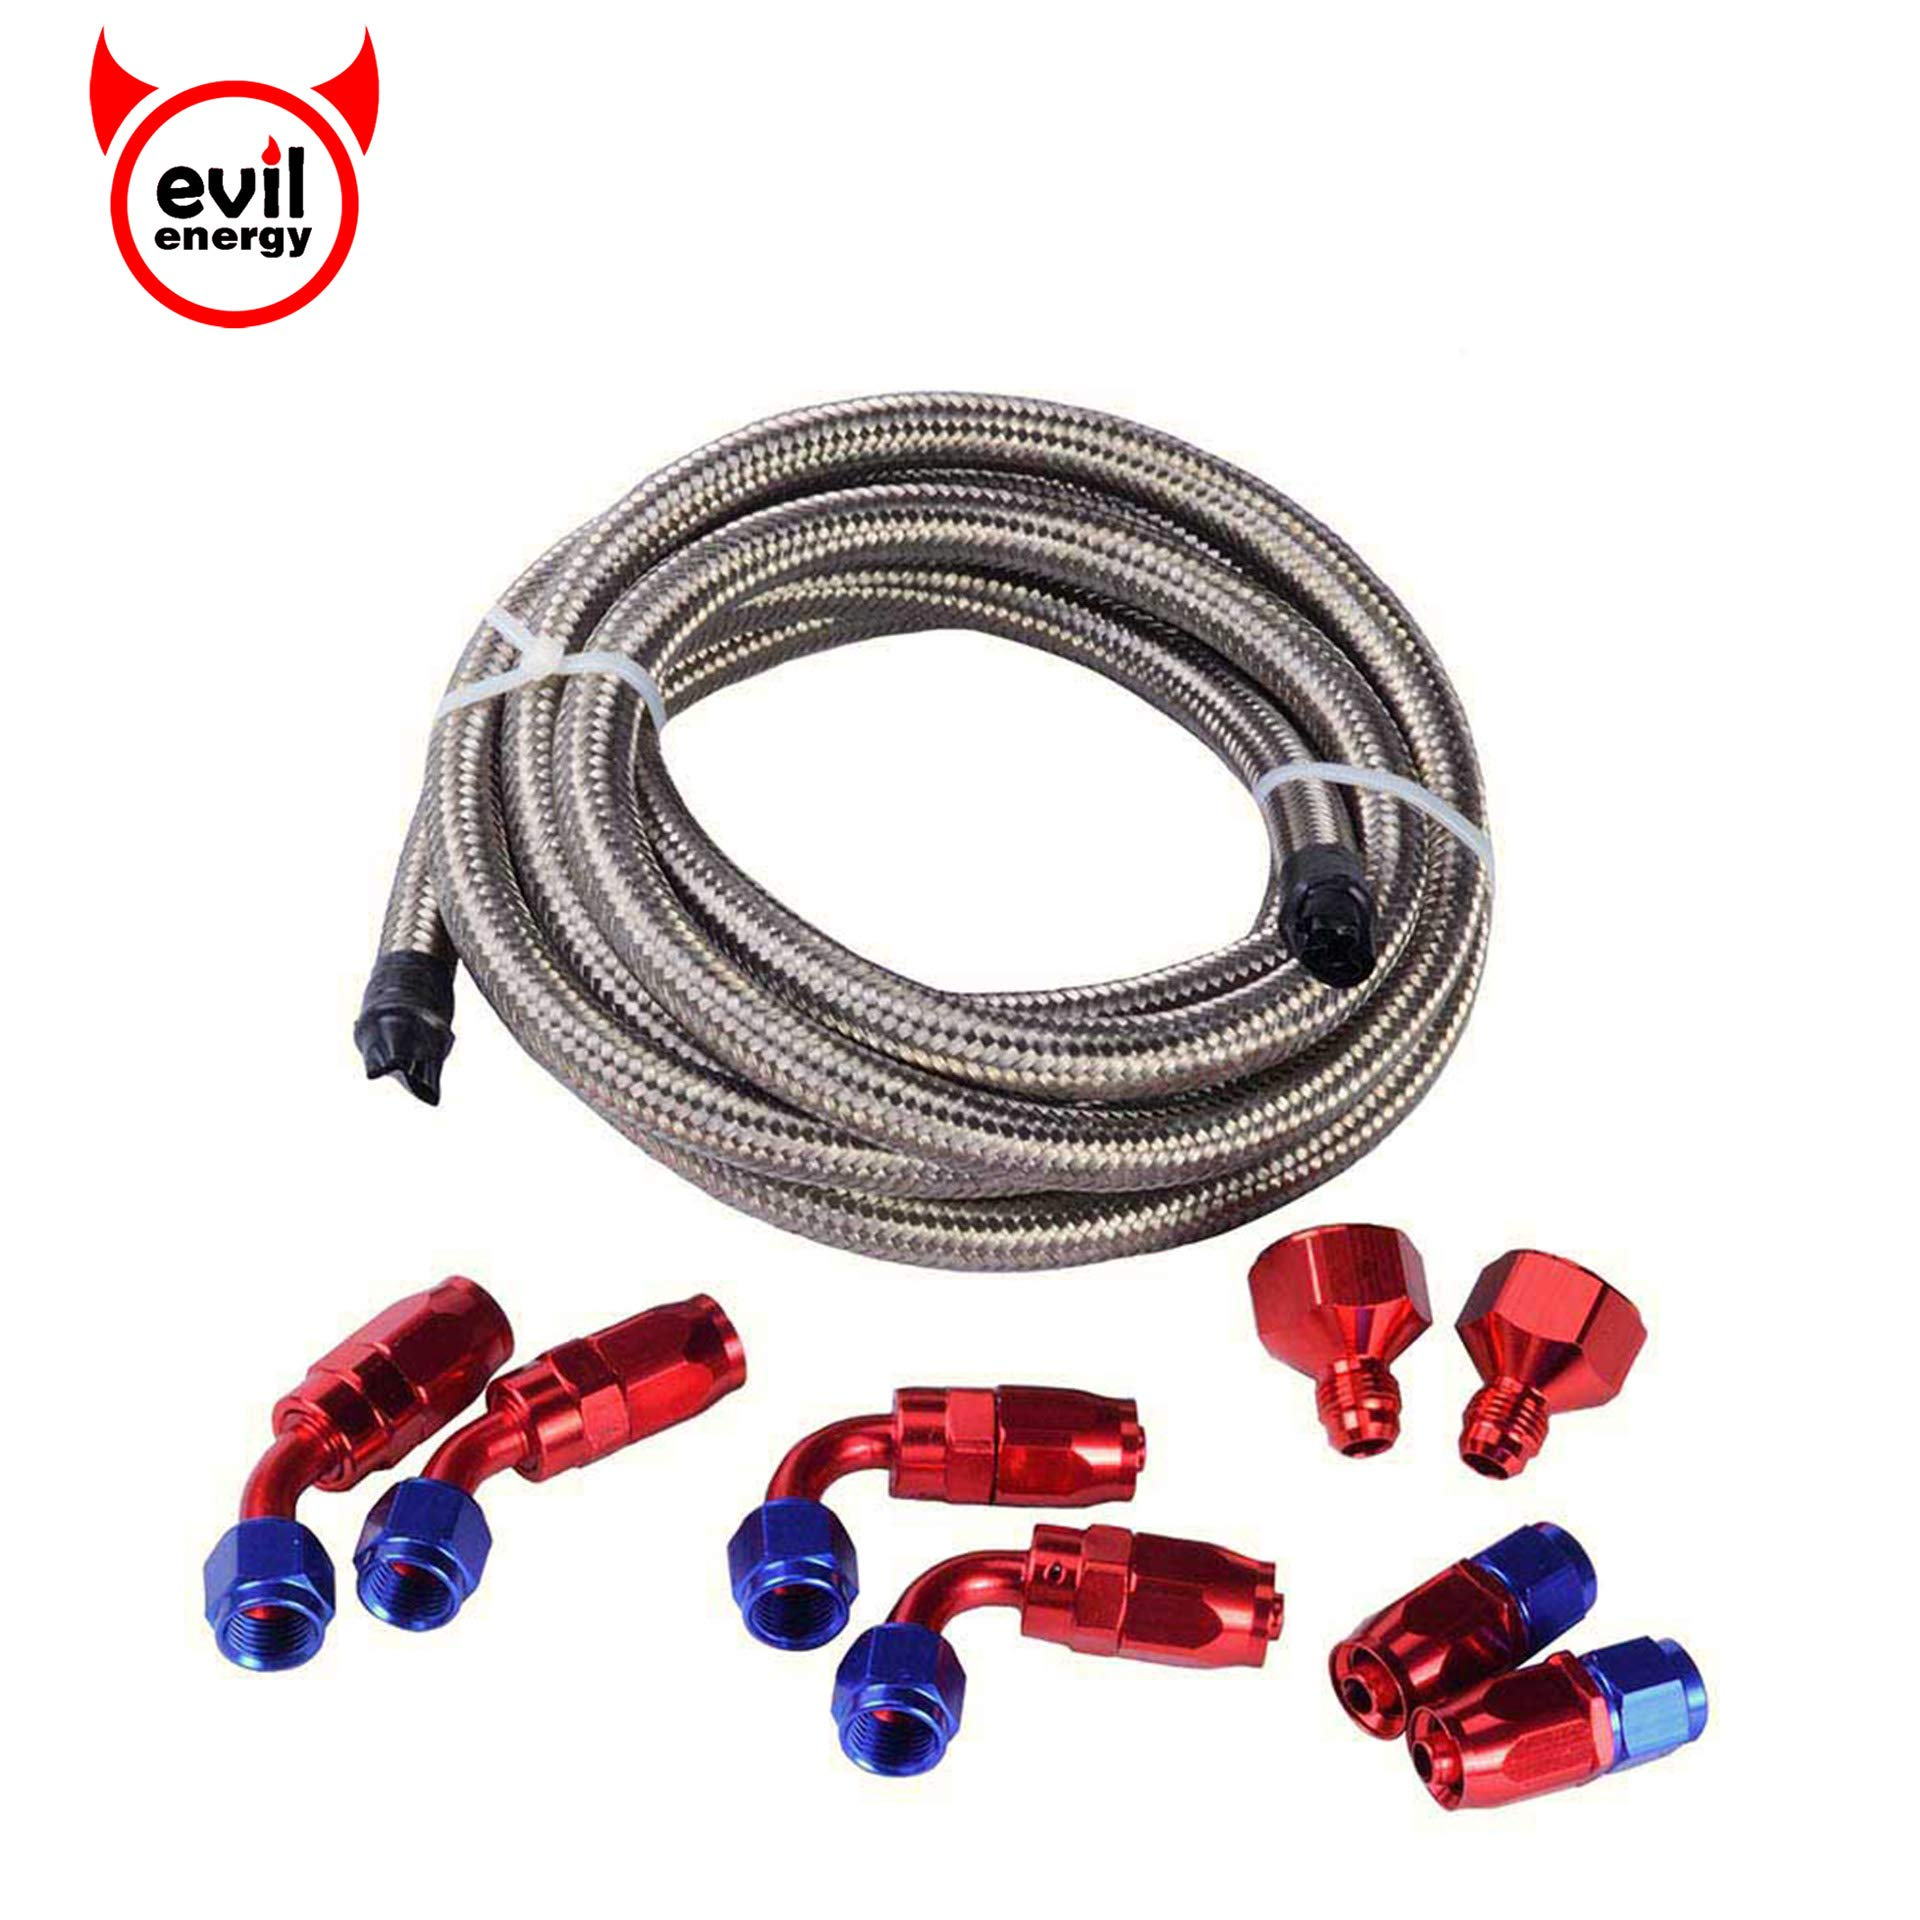 715m2xTZ7vL._SR500500_ fuel line kits amazon com